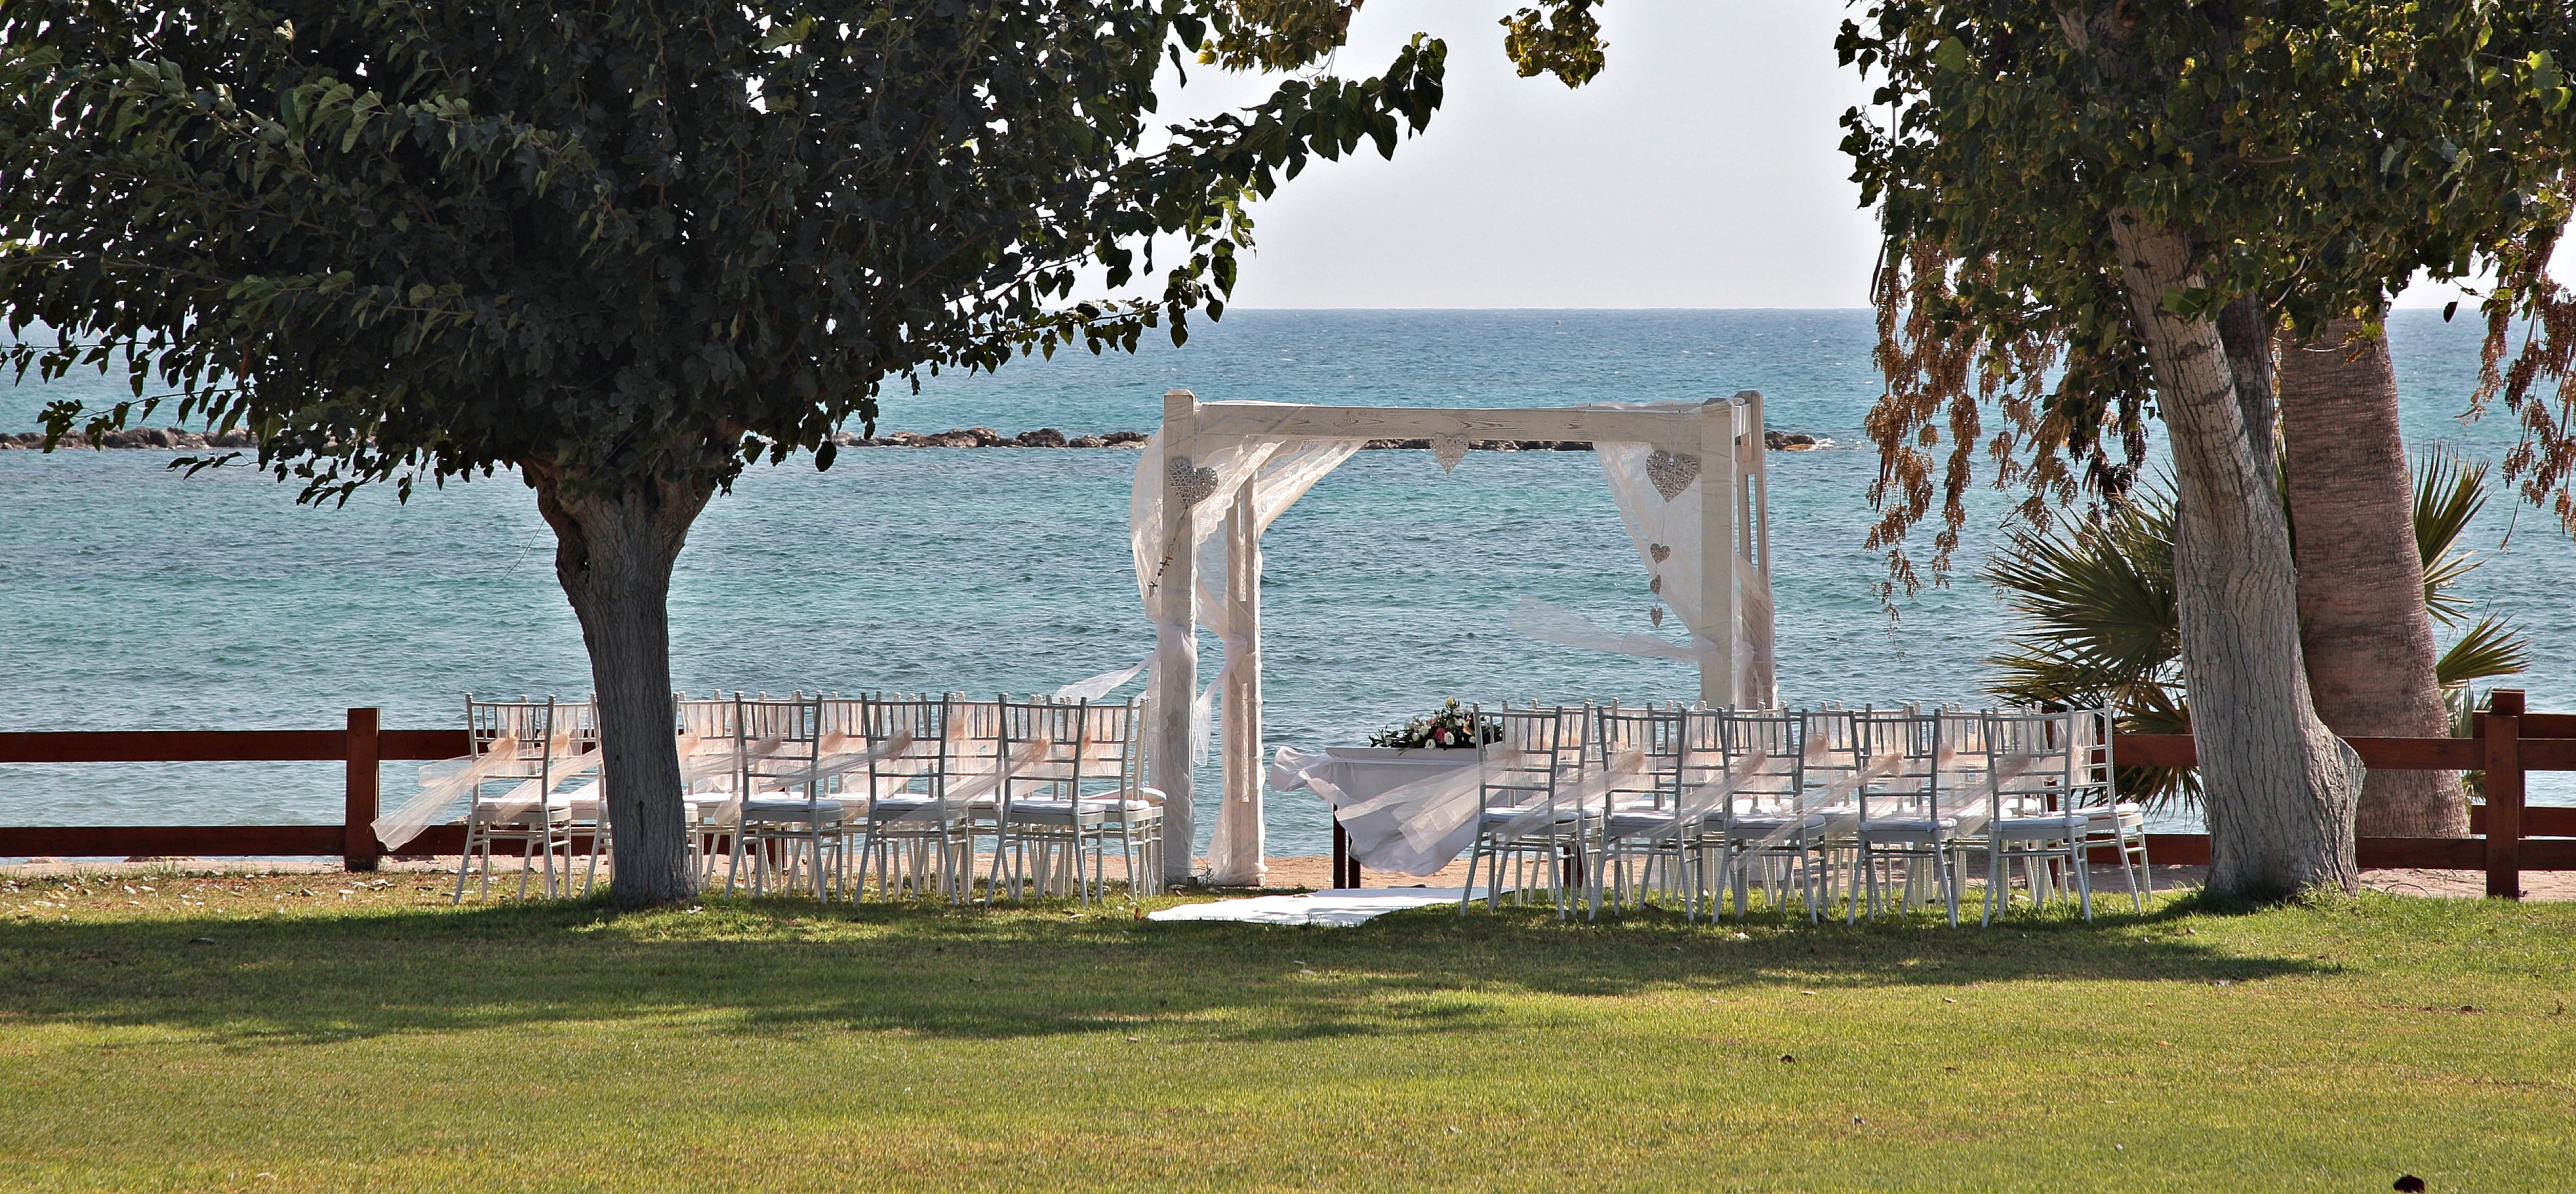 Wedding on the beach Cyprus